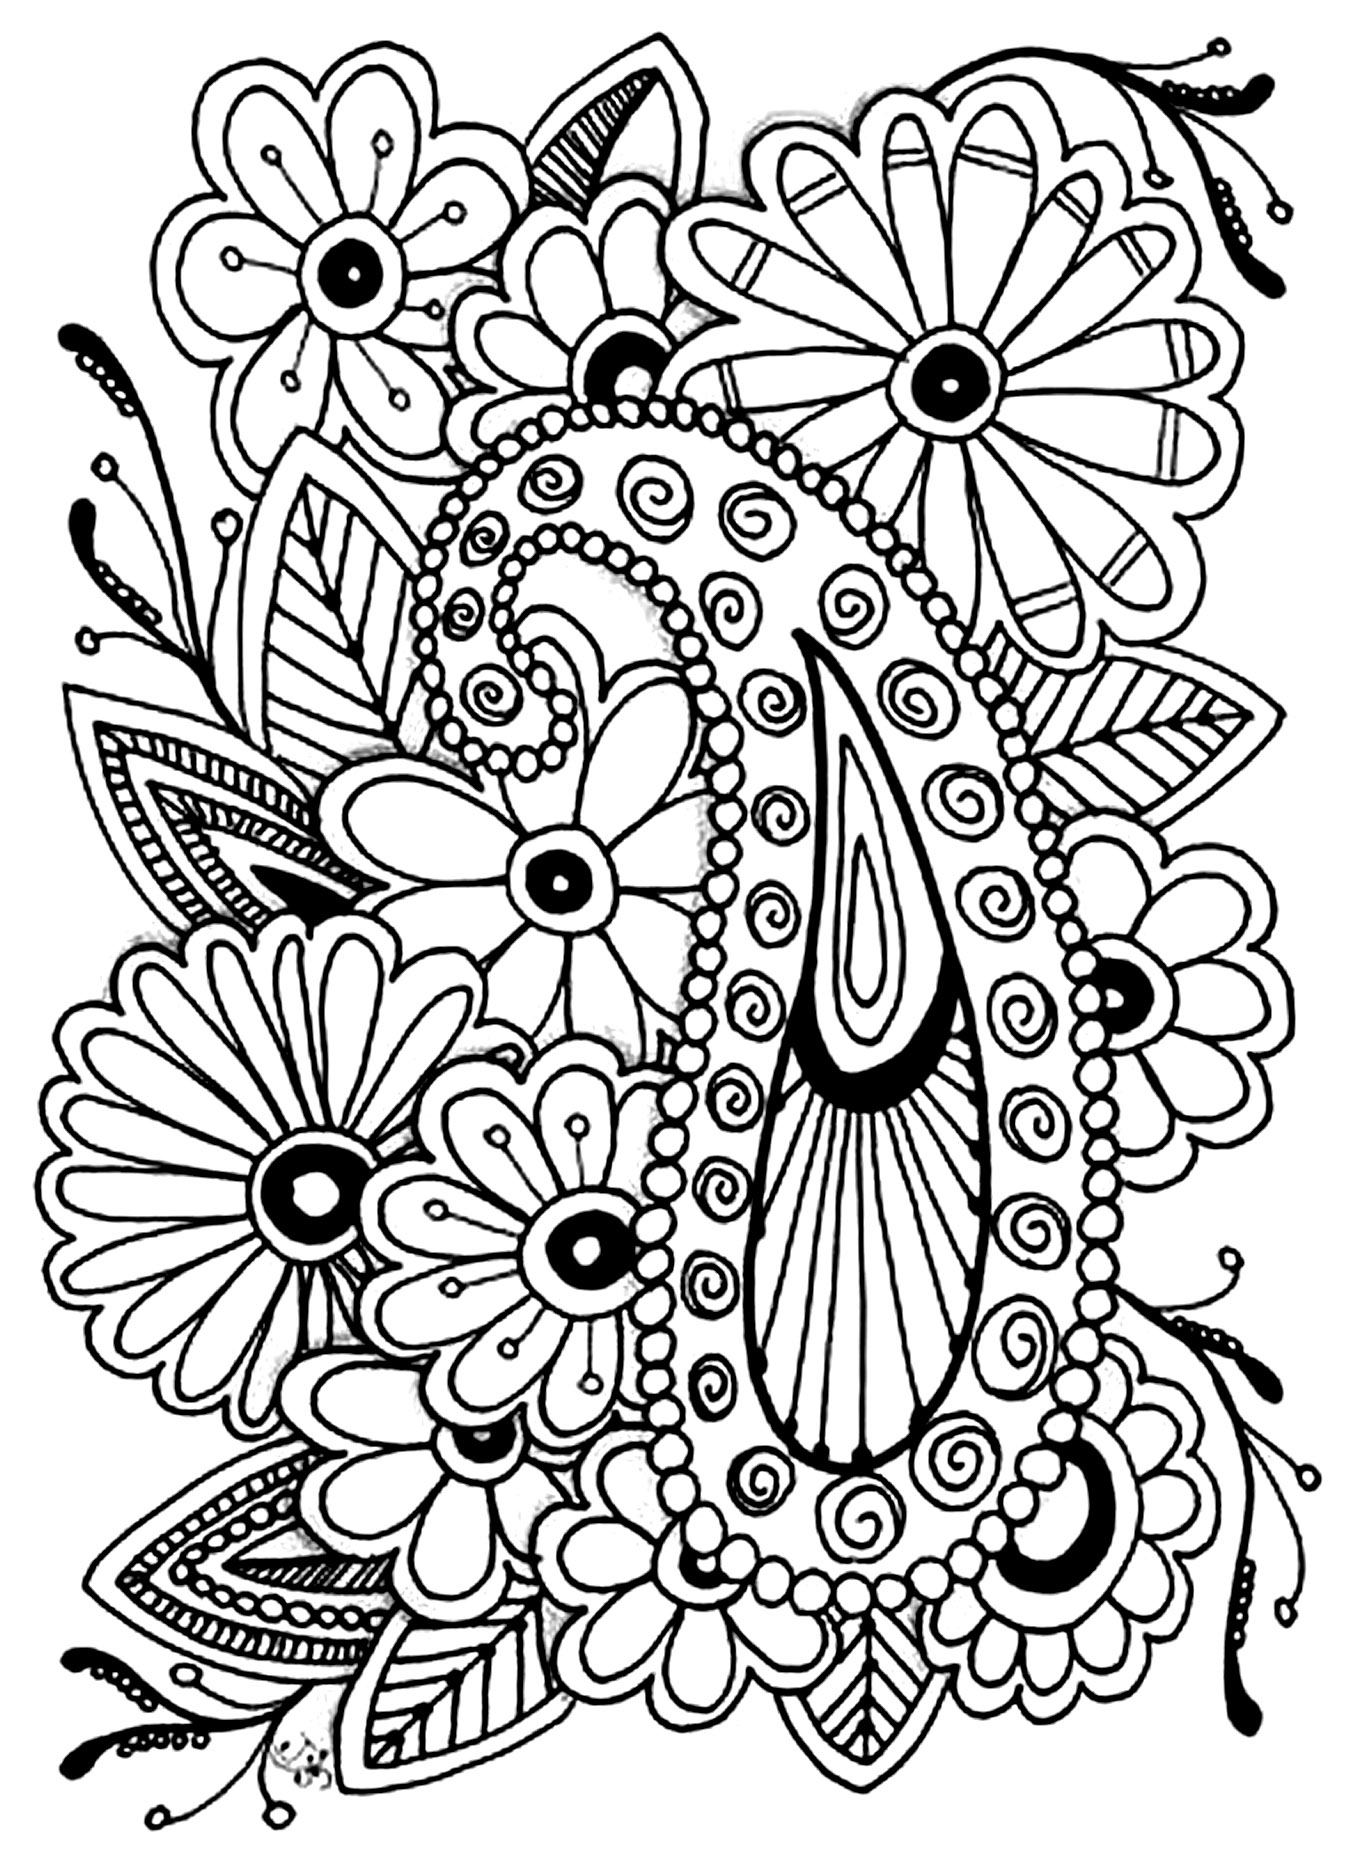 coloring pages for adults patterns patterns of the desert zentangle adult coloring pages pages coloring patterns adults for